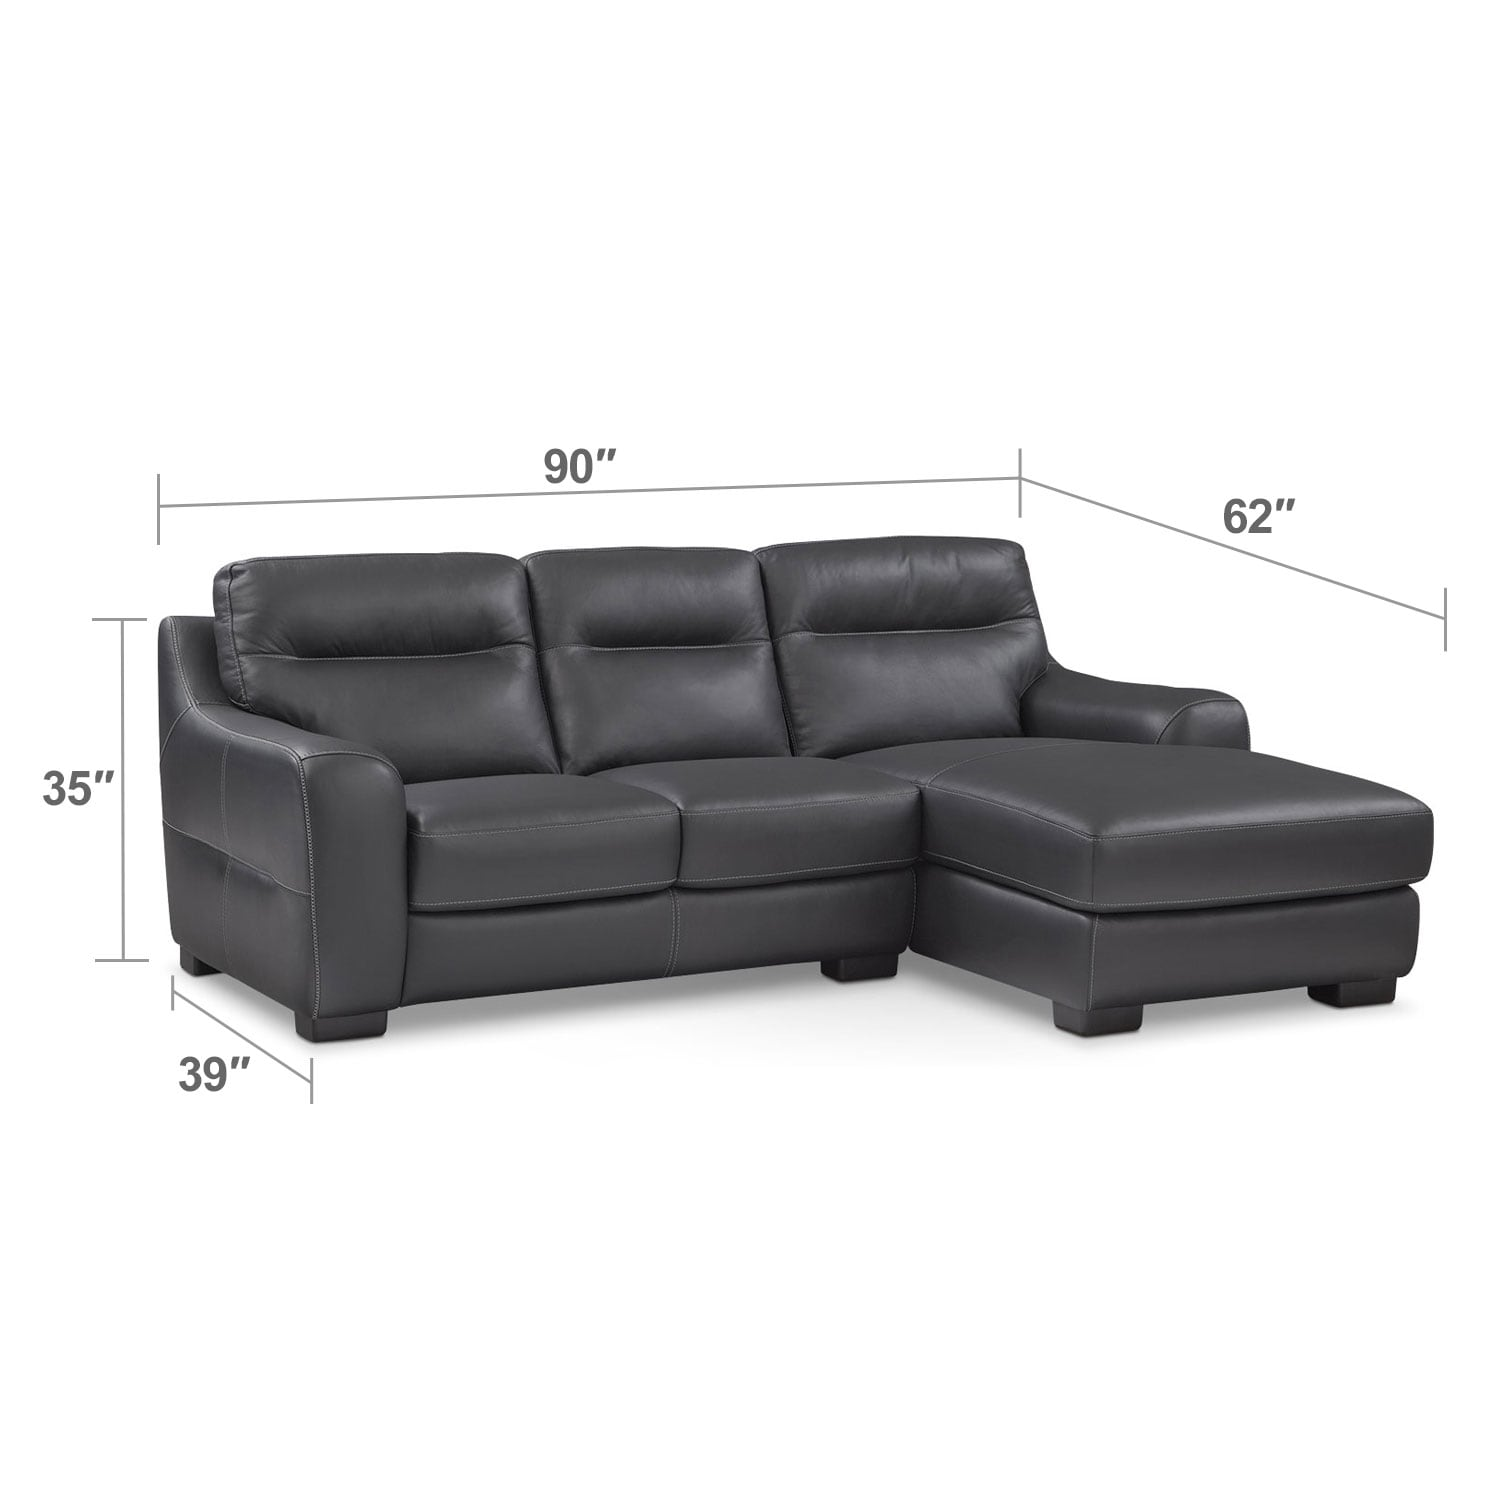 Living Room Furniture - Rocco 2-Piece Right-Facing Sectional - Black